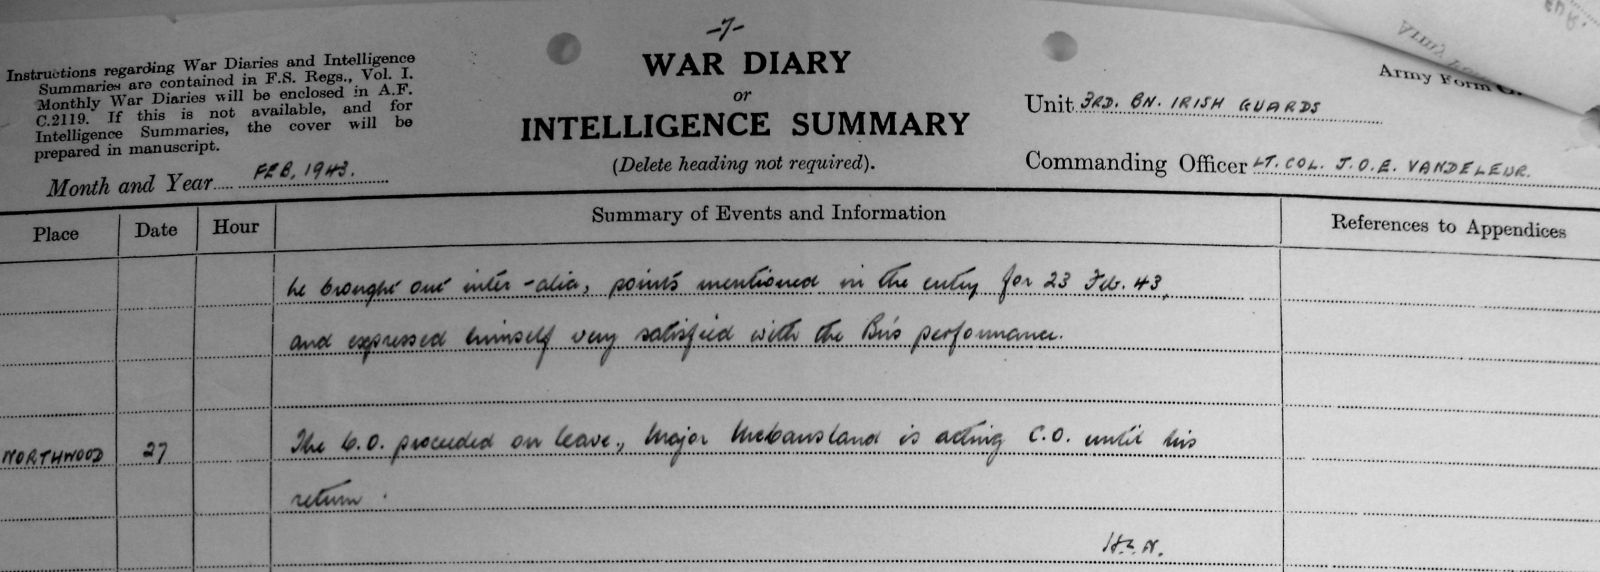 February War Diary, 3 Irish Guards, 1943